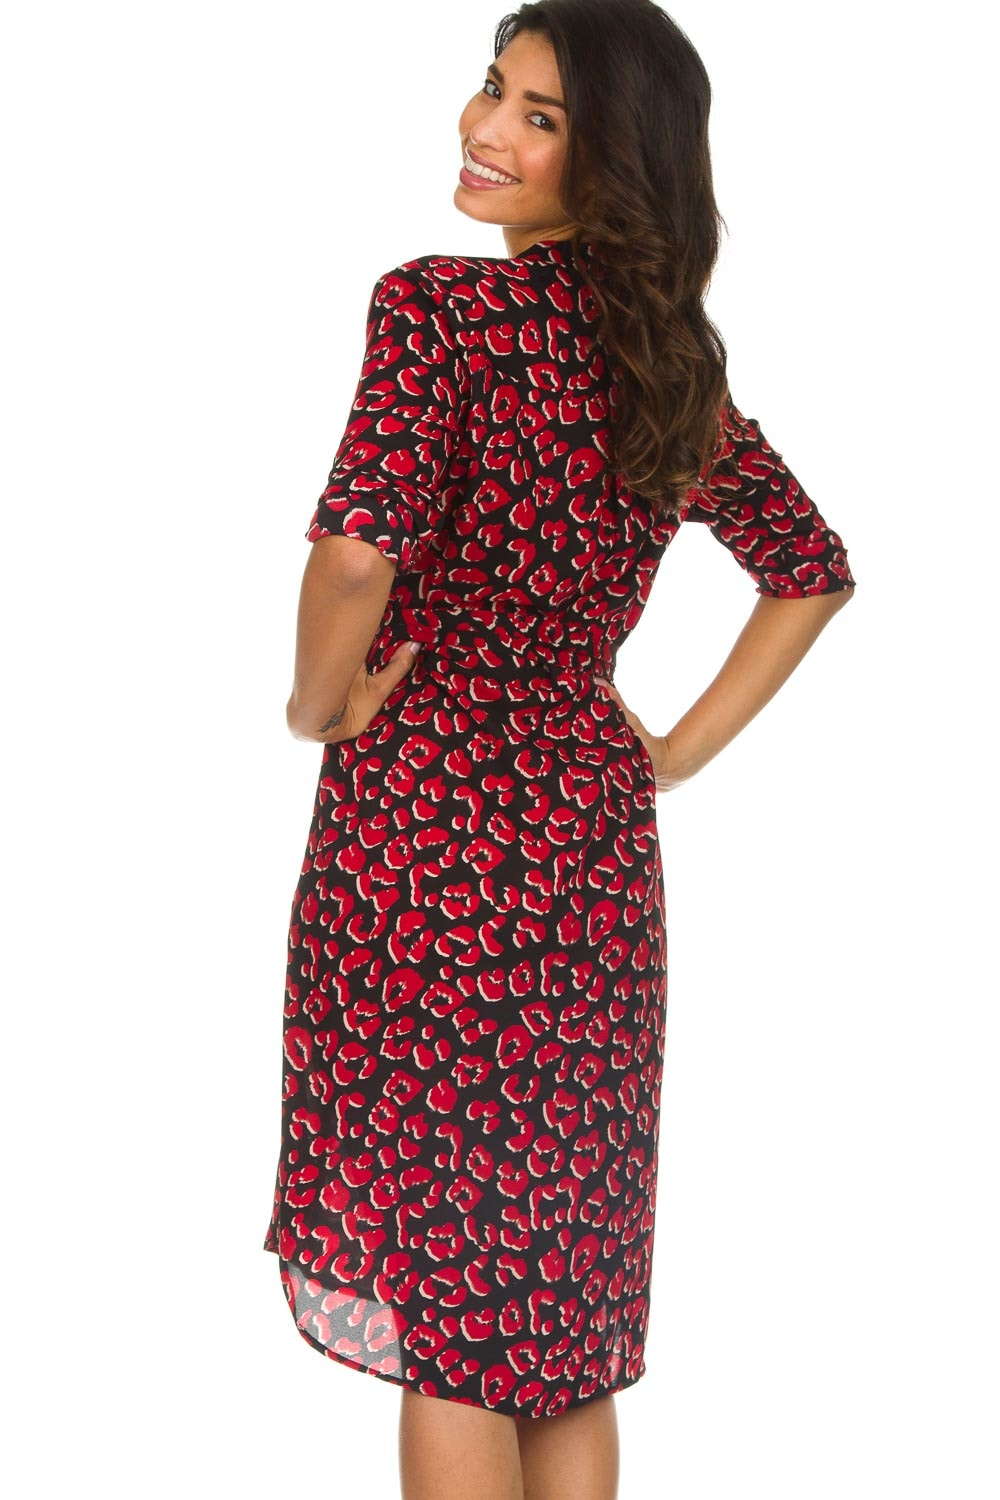 Afbeelding Met Maxi Lolly's Laundry Print Rode French Jurk Panterprint PxH8qwZ